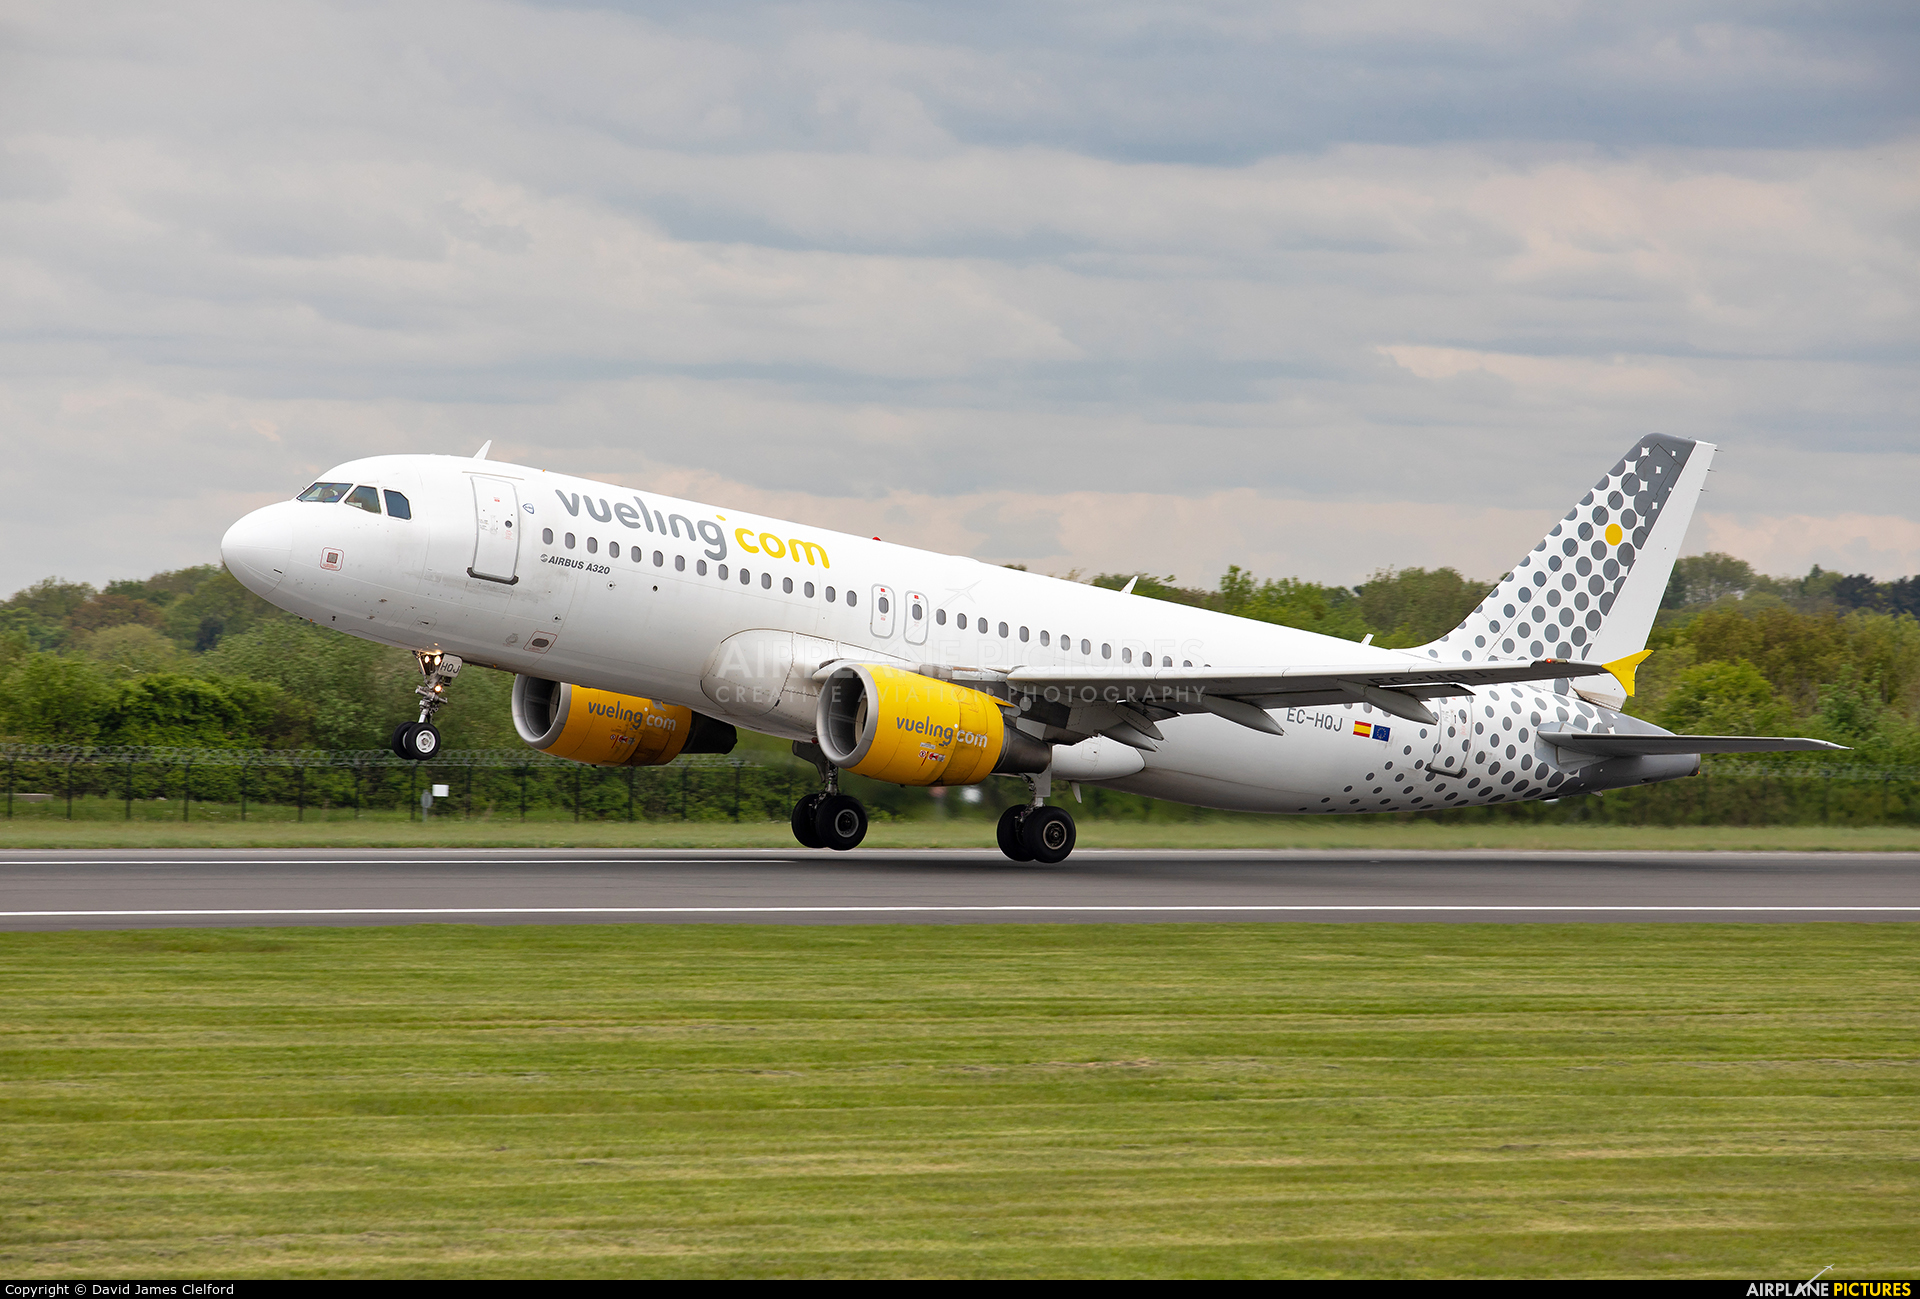 Vueling Airlines EC-HQJ aircraft at Manchester